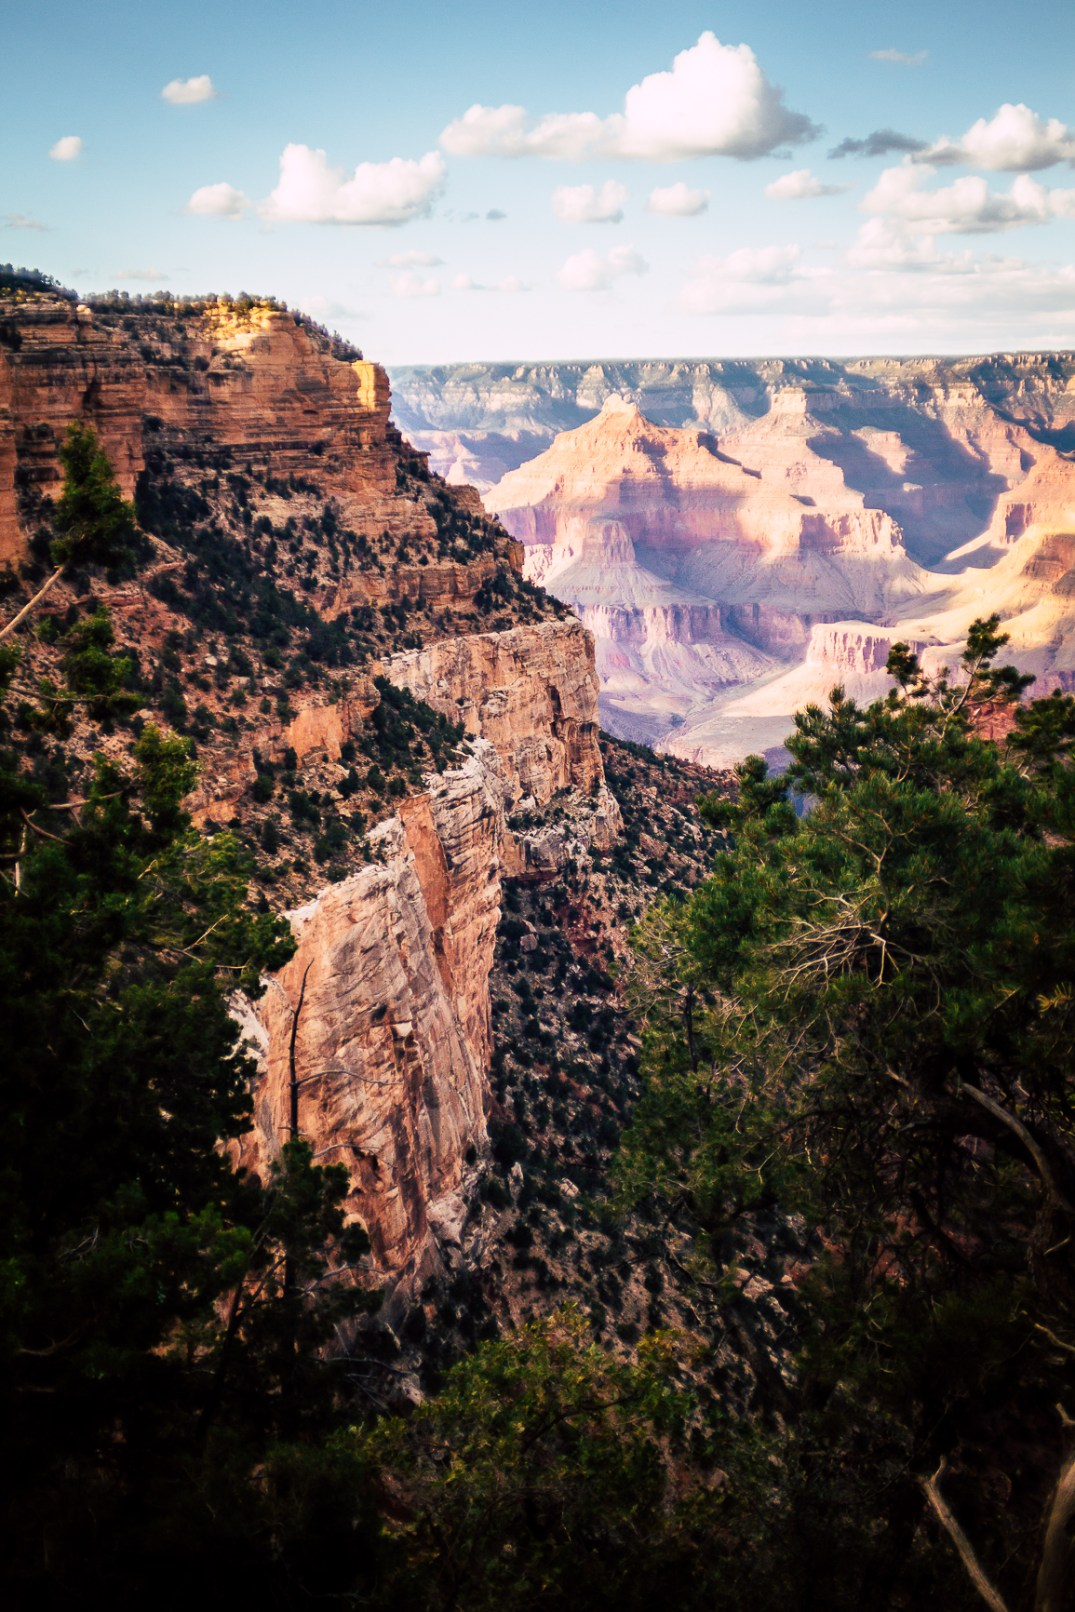 A shot of part of the Grand Canyon. Shot with the Spiratone 20mm F2.8